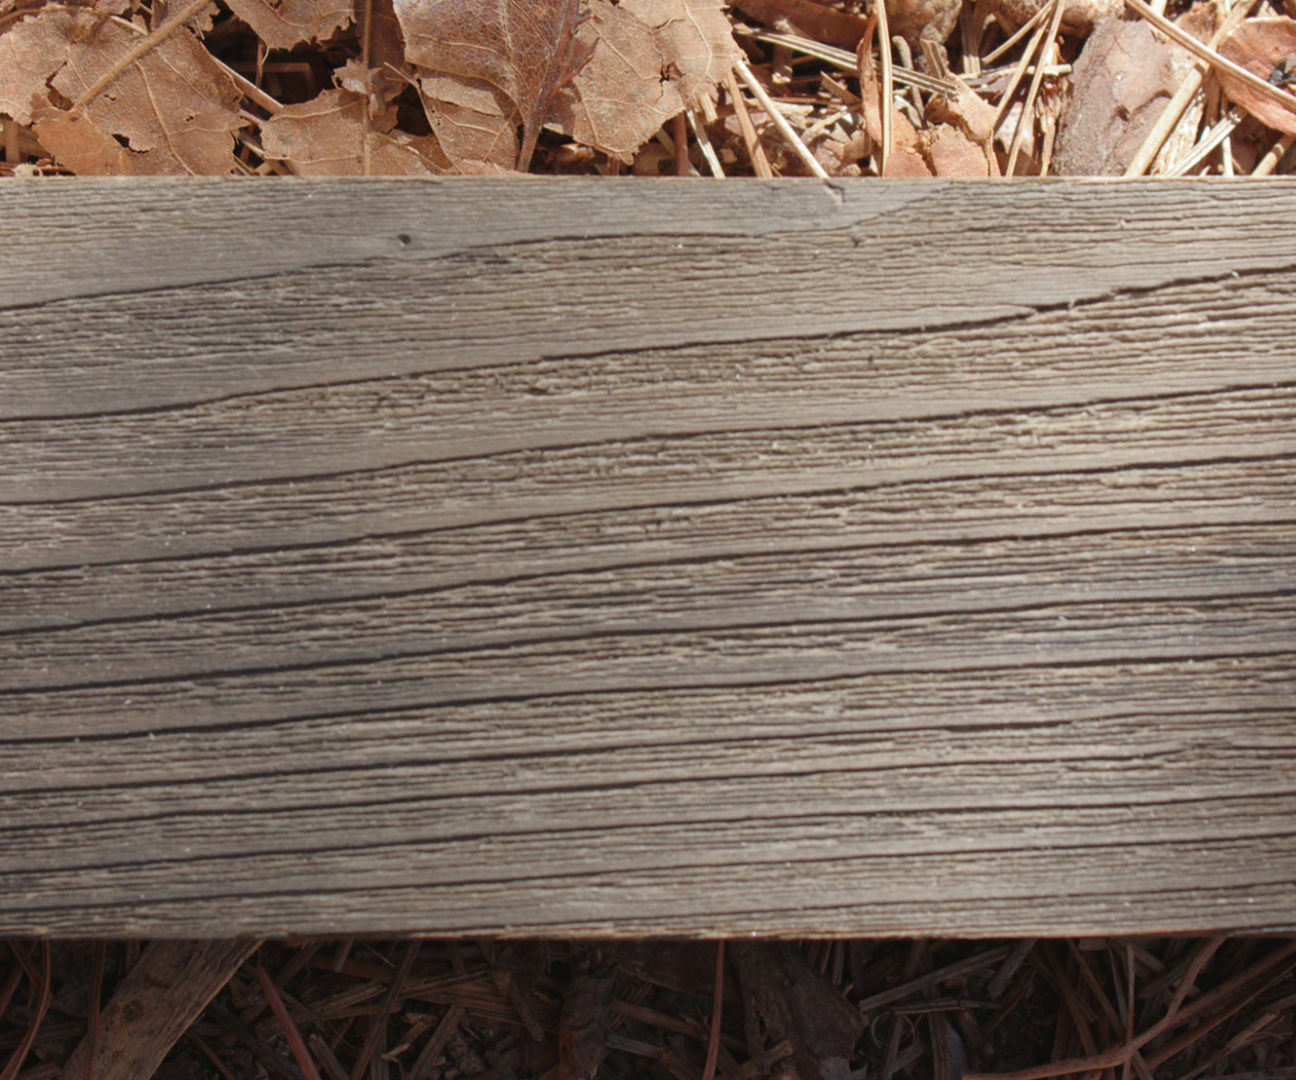 How to Weather Wood FAST (Barnwood Effect)